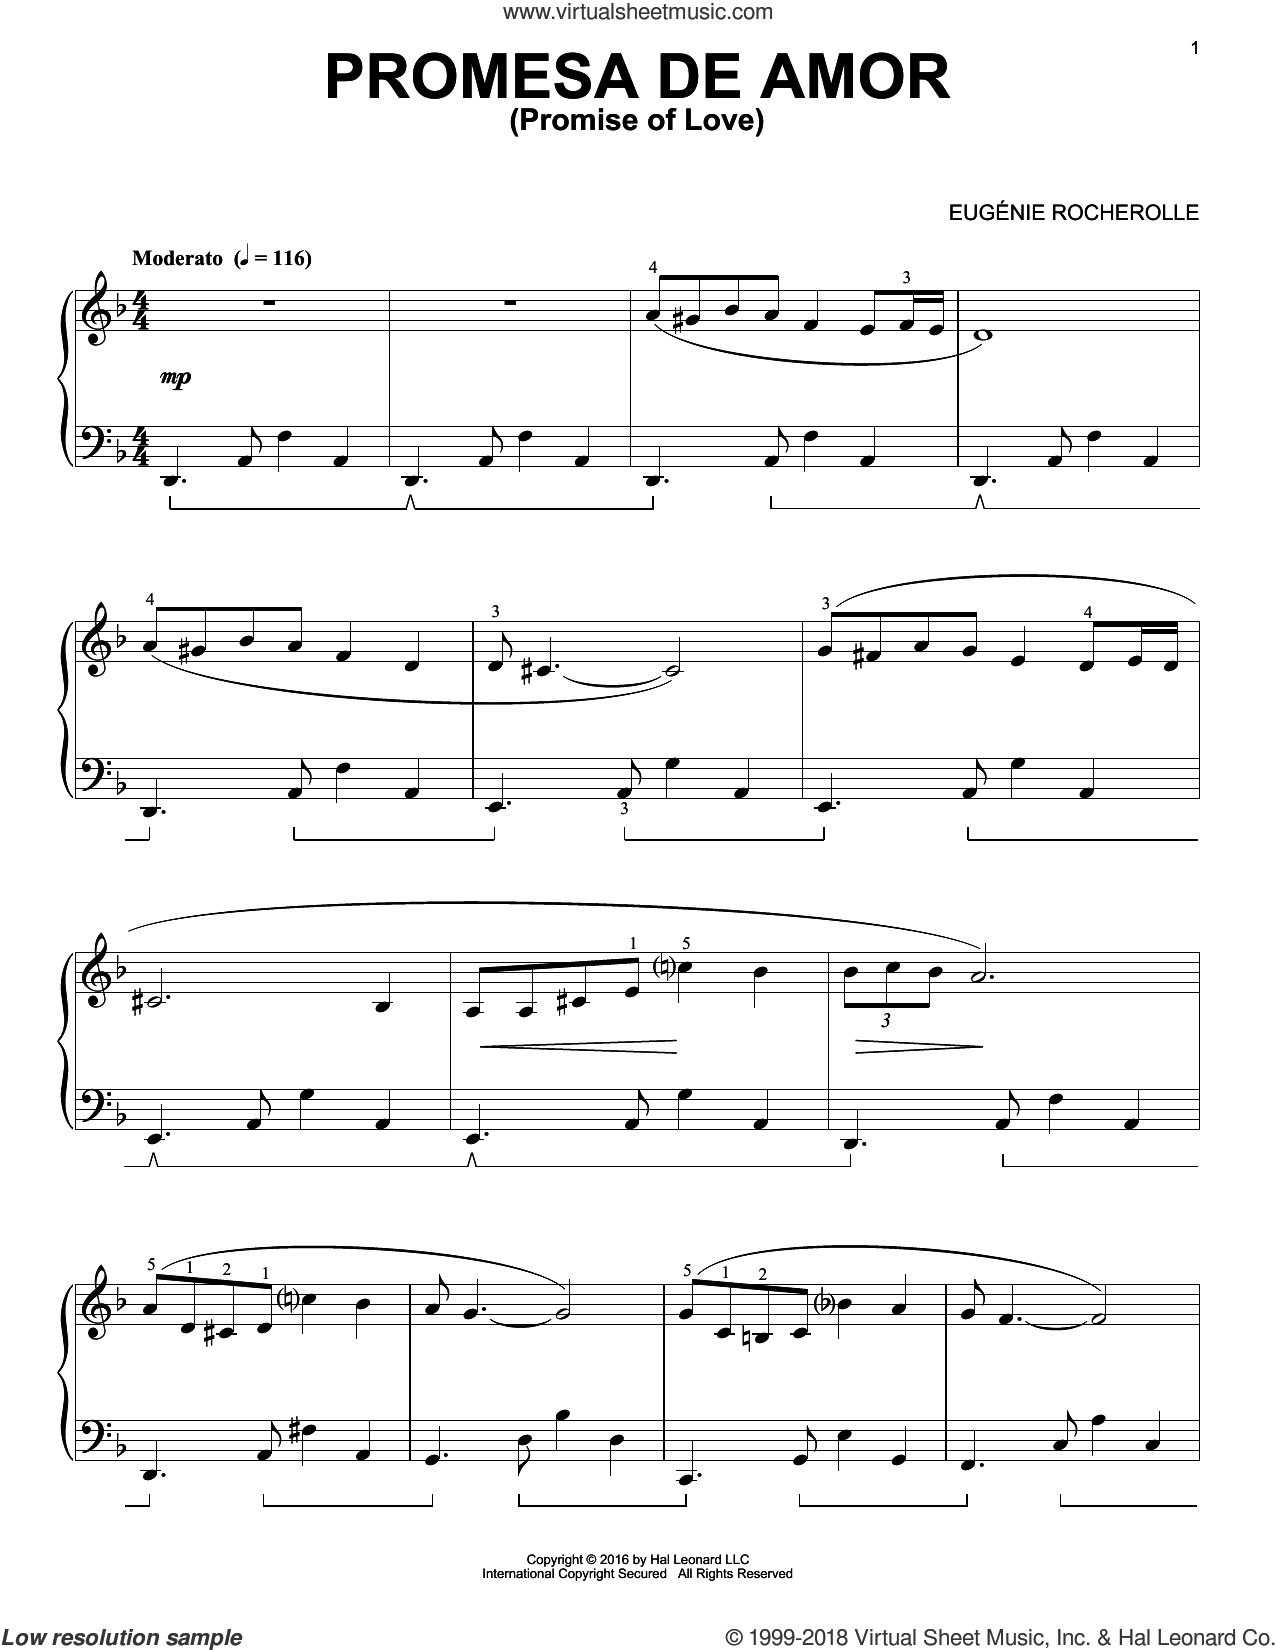 Promesa De Amor sheet music for piano solo by Eugenie Rocherolle, intermediate skill level